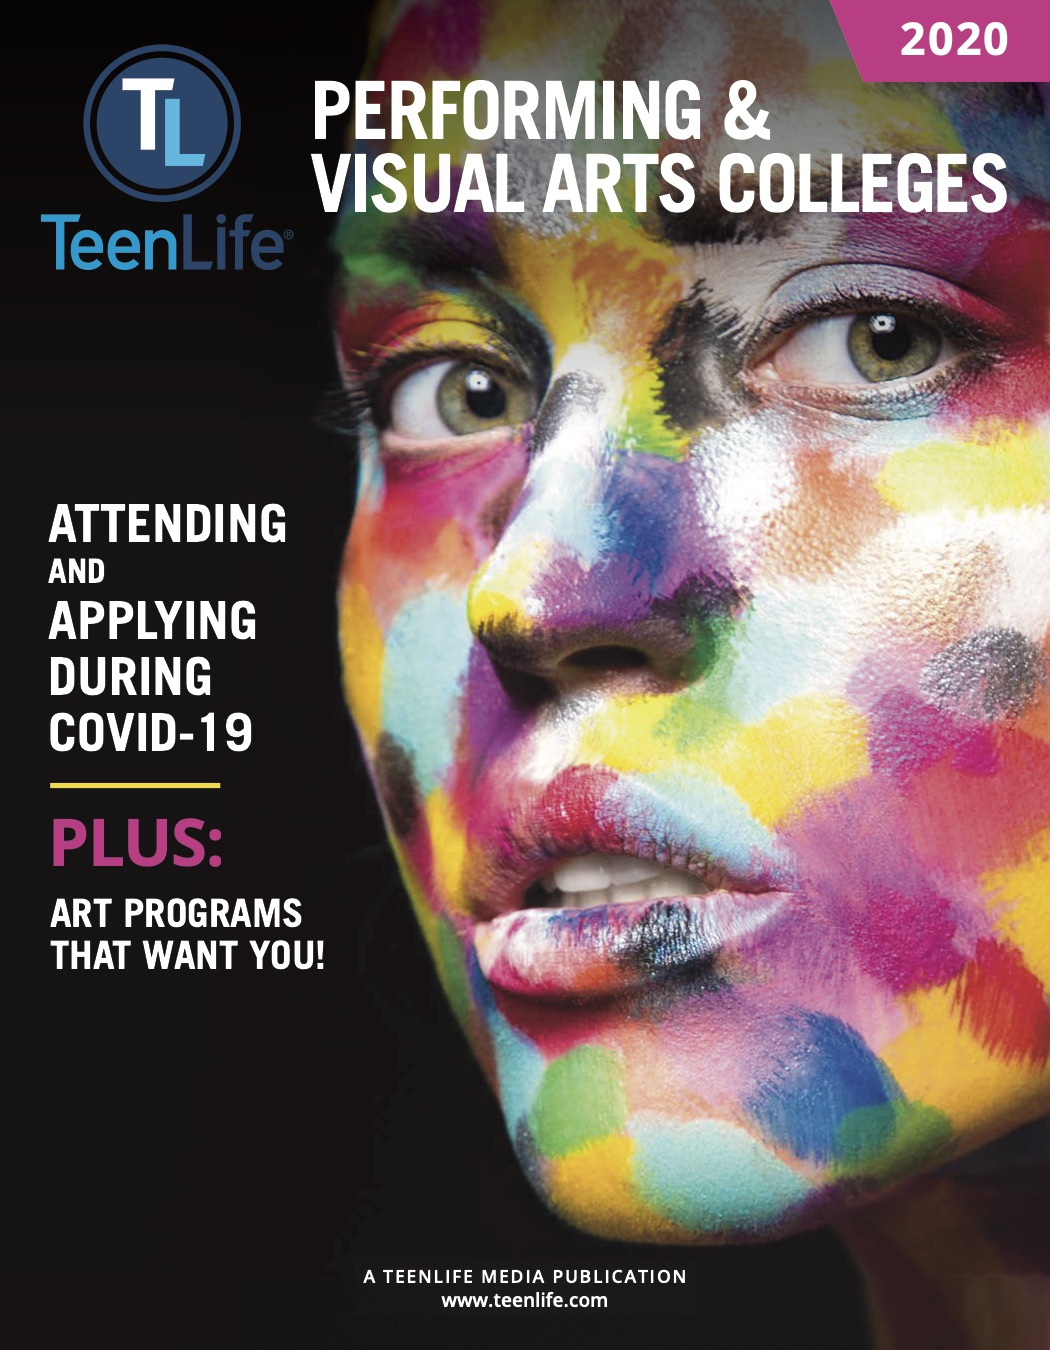 Guide to Performing and Visual Arts Colleges 2020